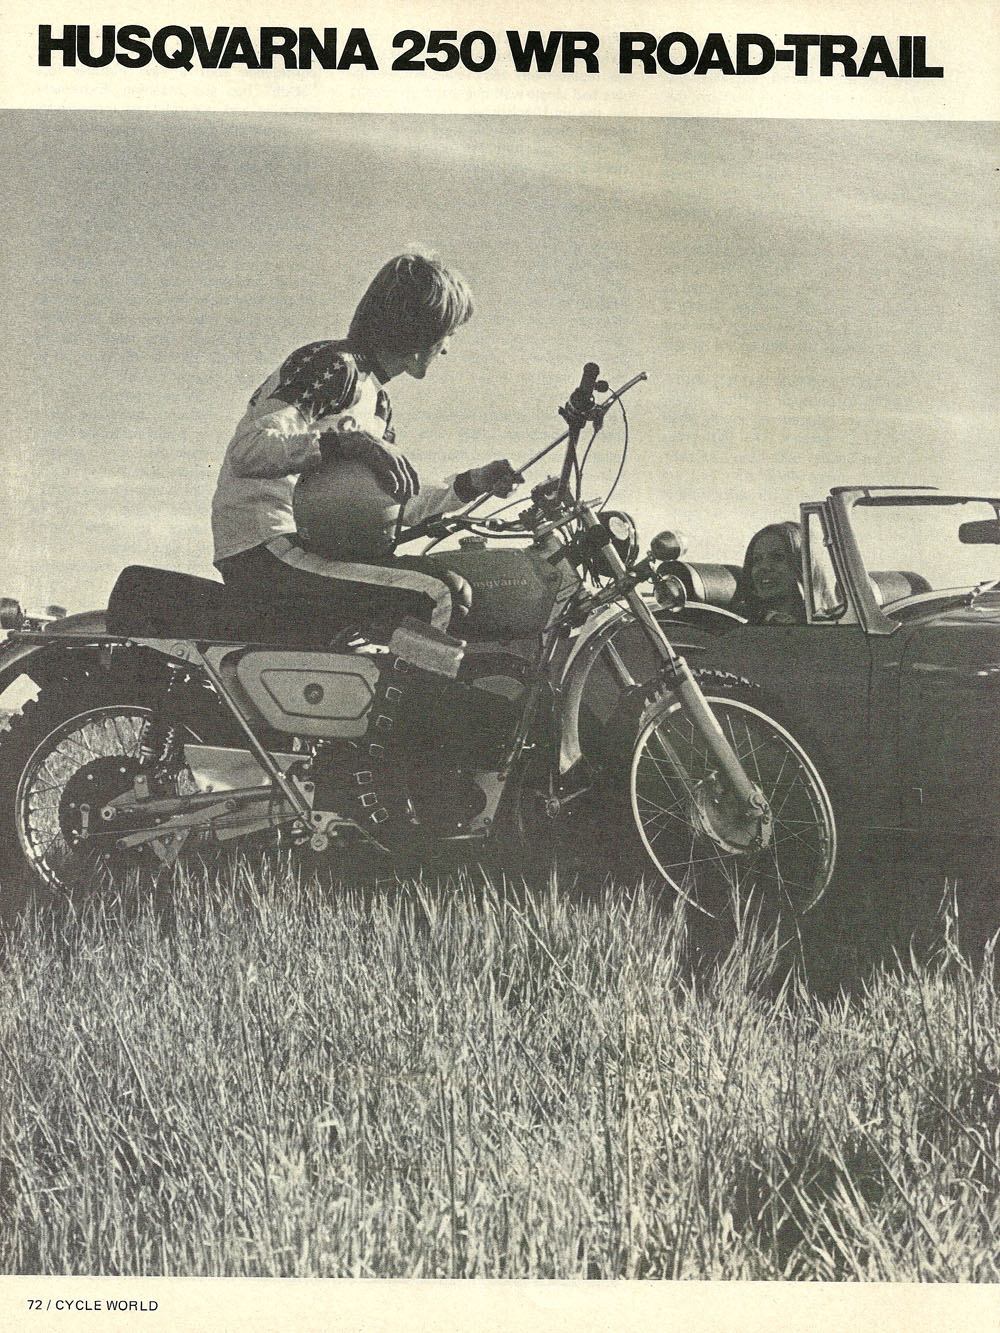 1973 Husqvarna 250 wr road test 01.jpg